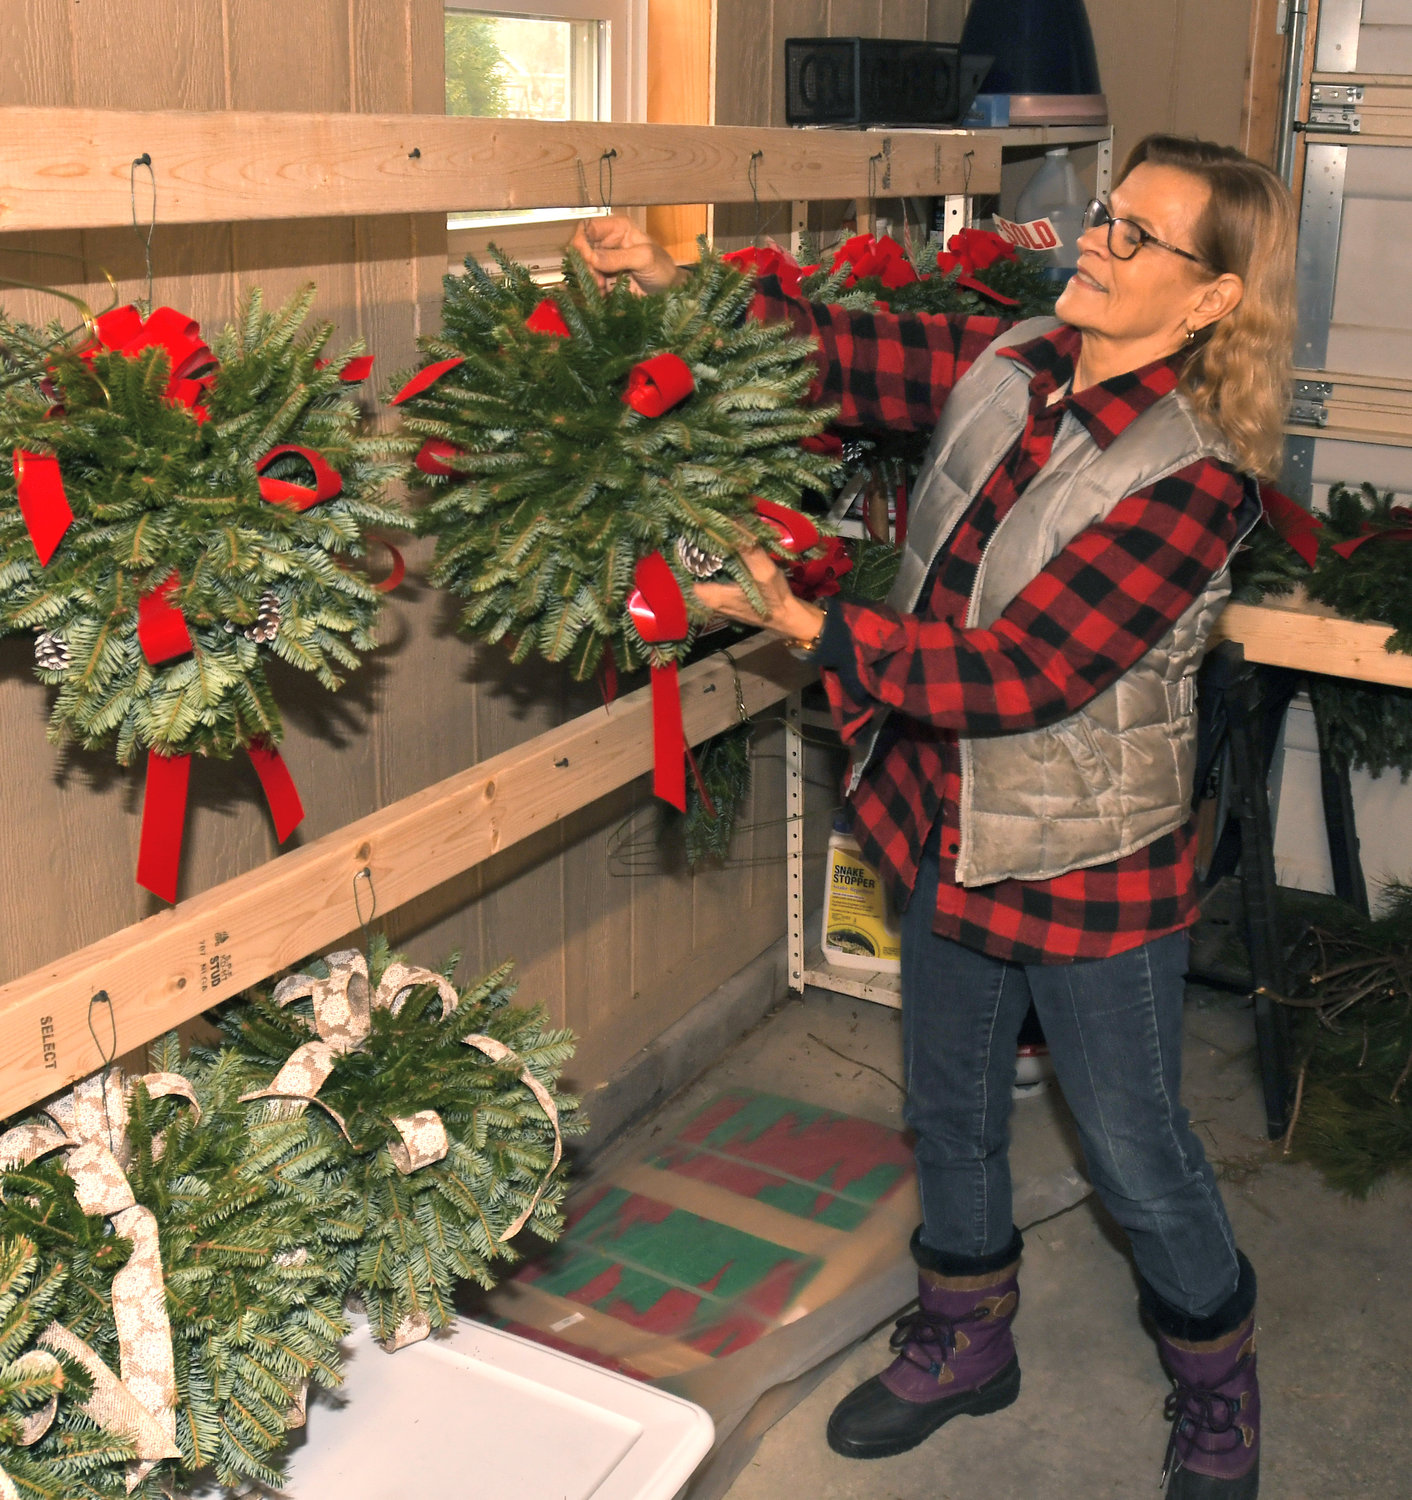 DECOR — Julie Shuster hangs a Kissing Ball at her Verona tree farm on Black Friday as they opened up their tree farm for the Christmas season.